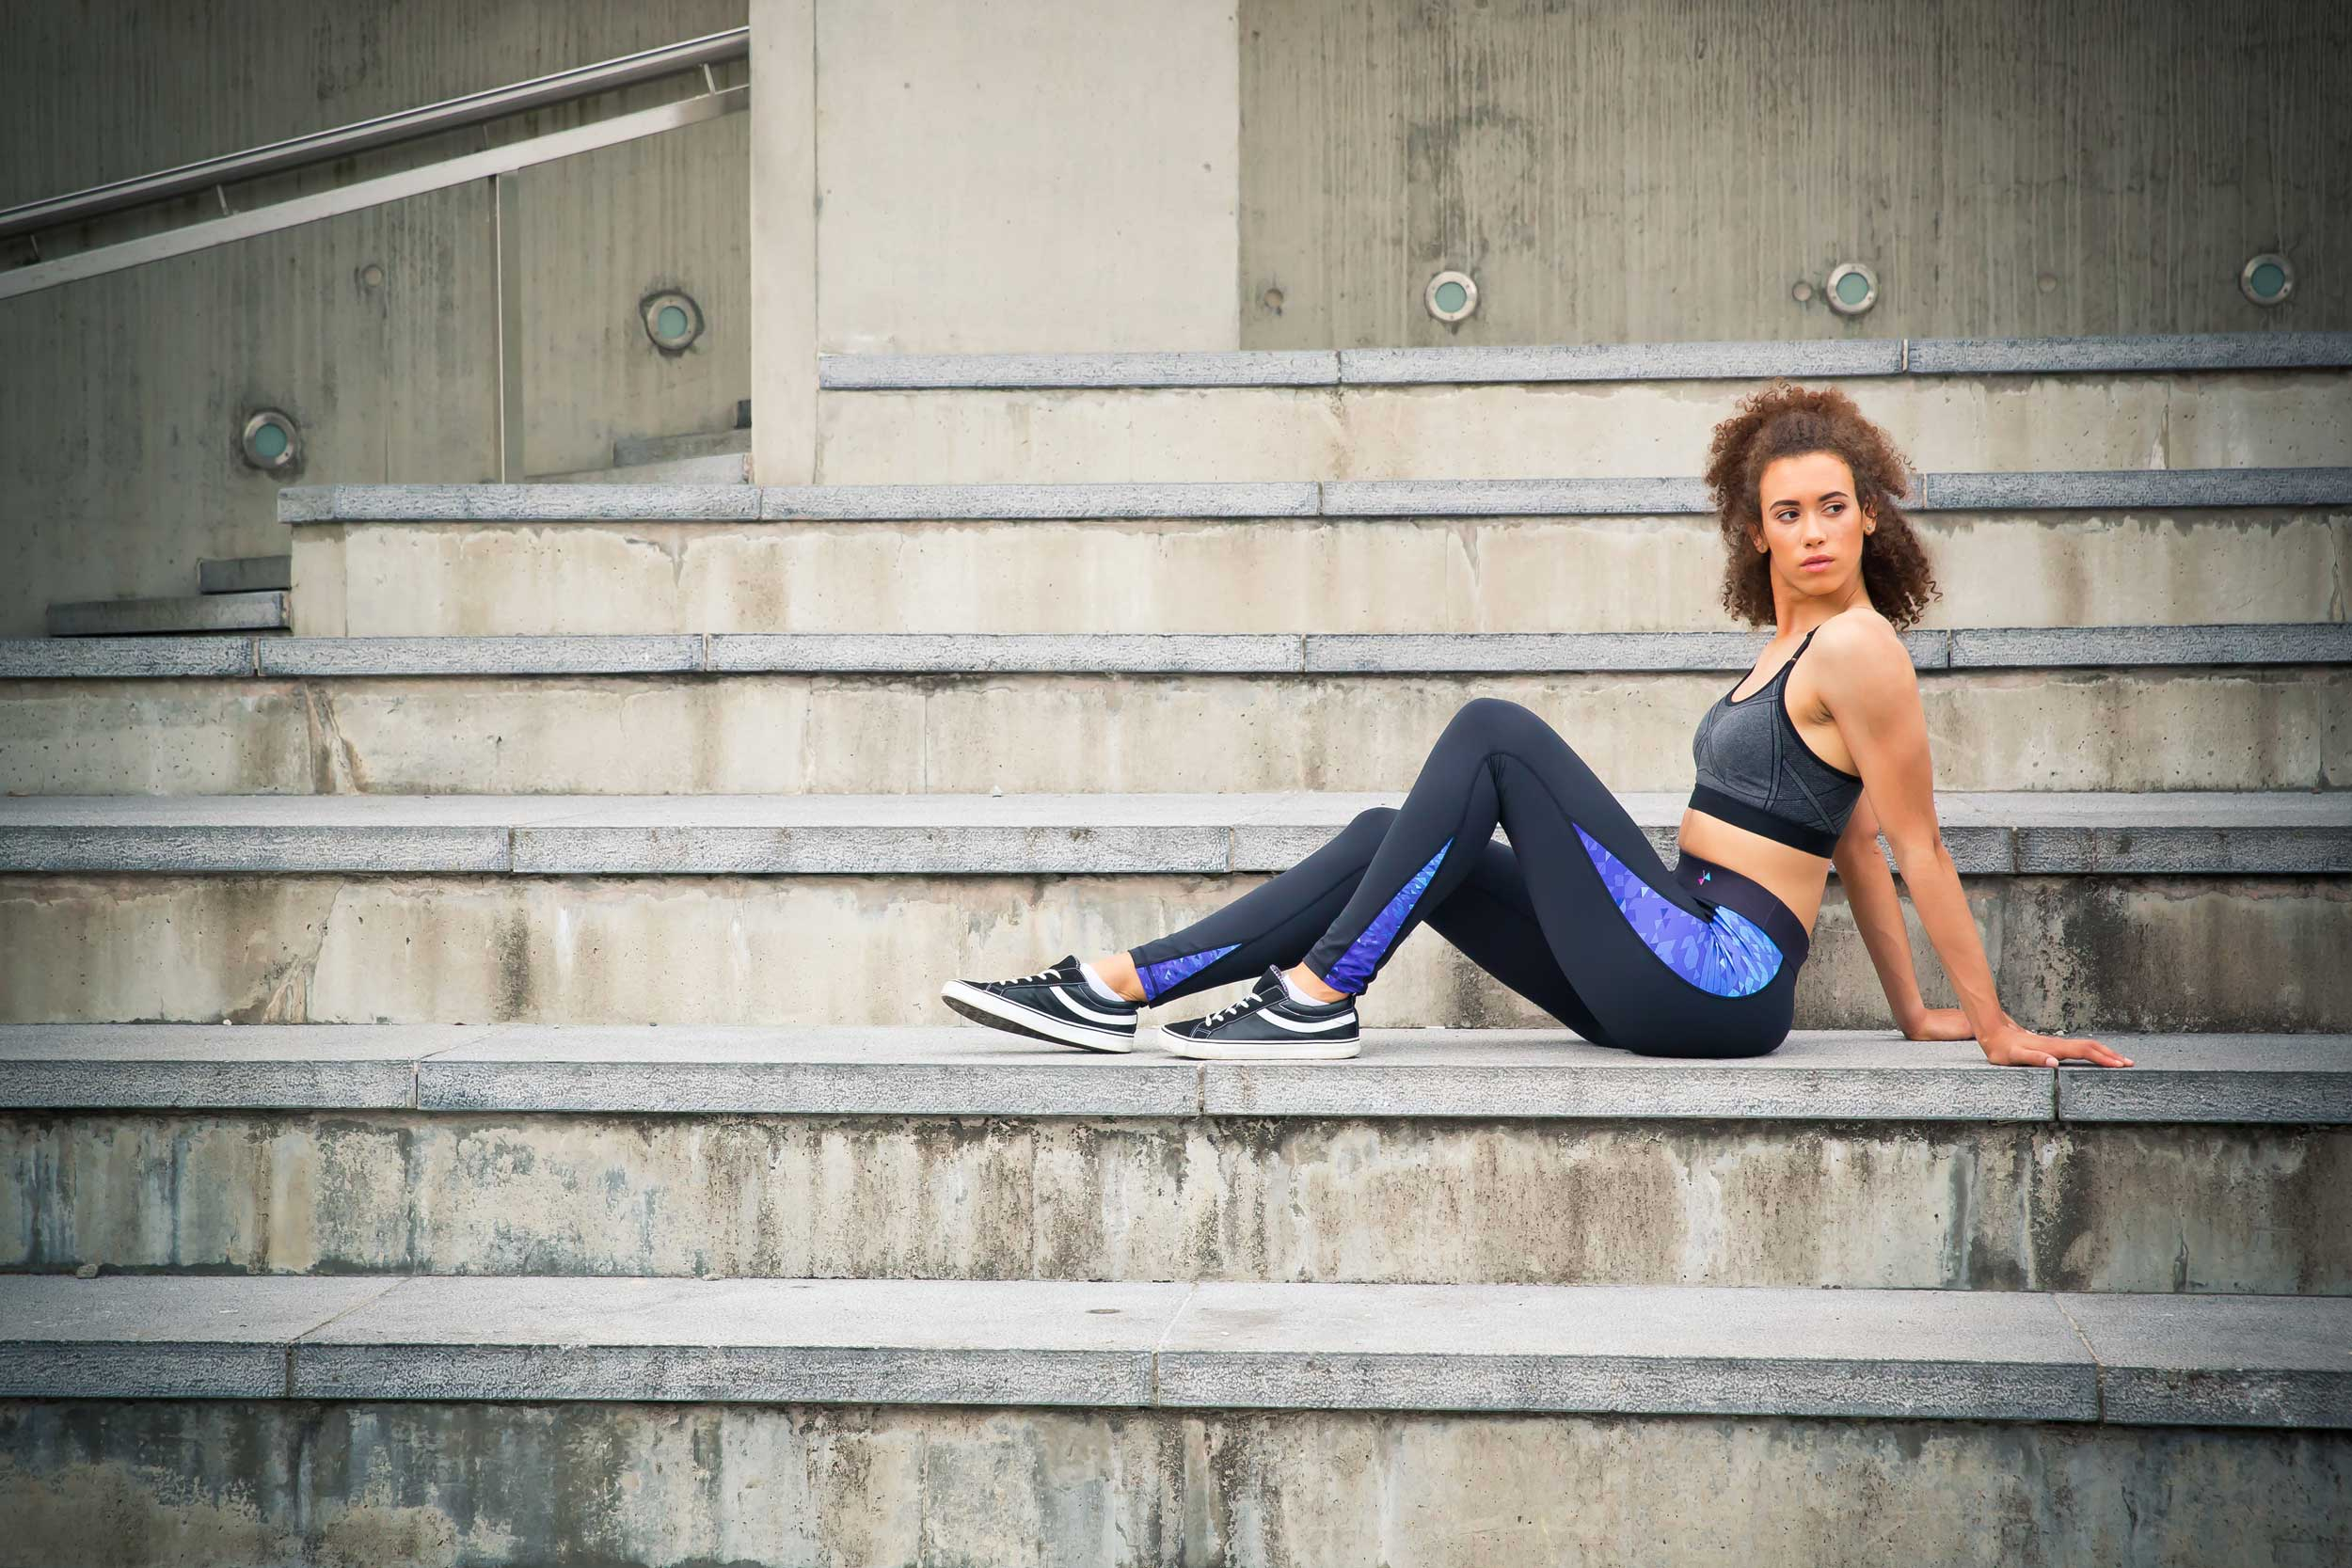 I-SPY Fitness, Yoga & Lifestyle Leggings - Non see through leggings, squat proof